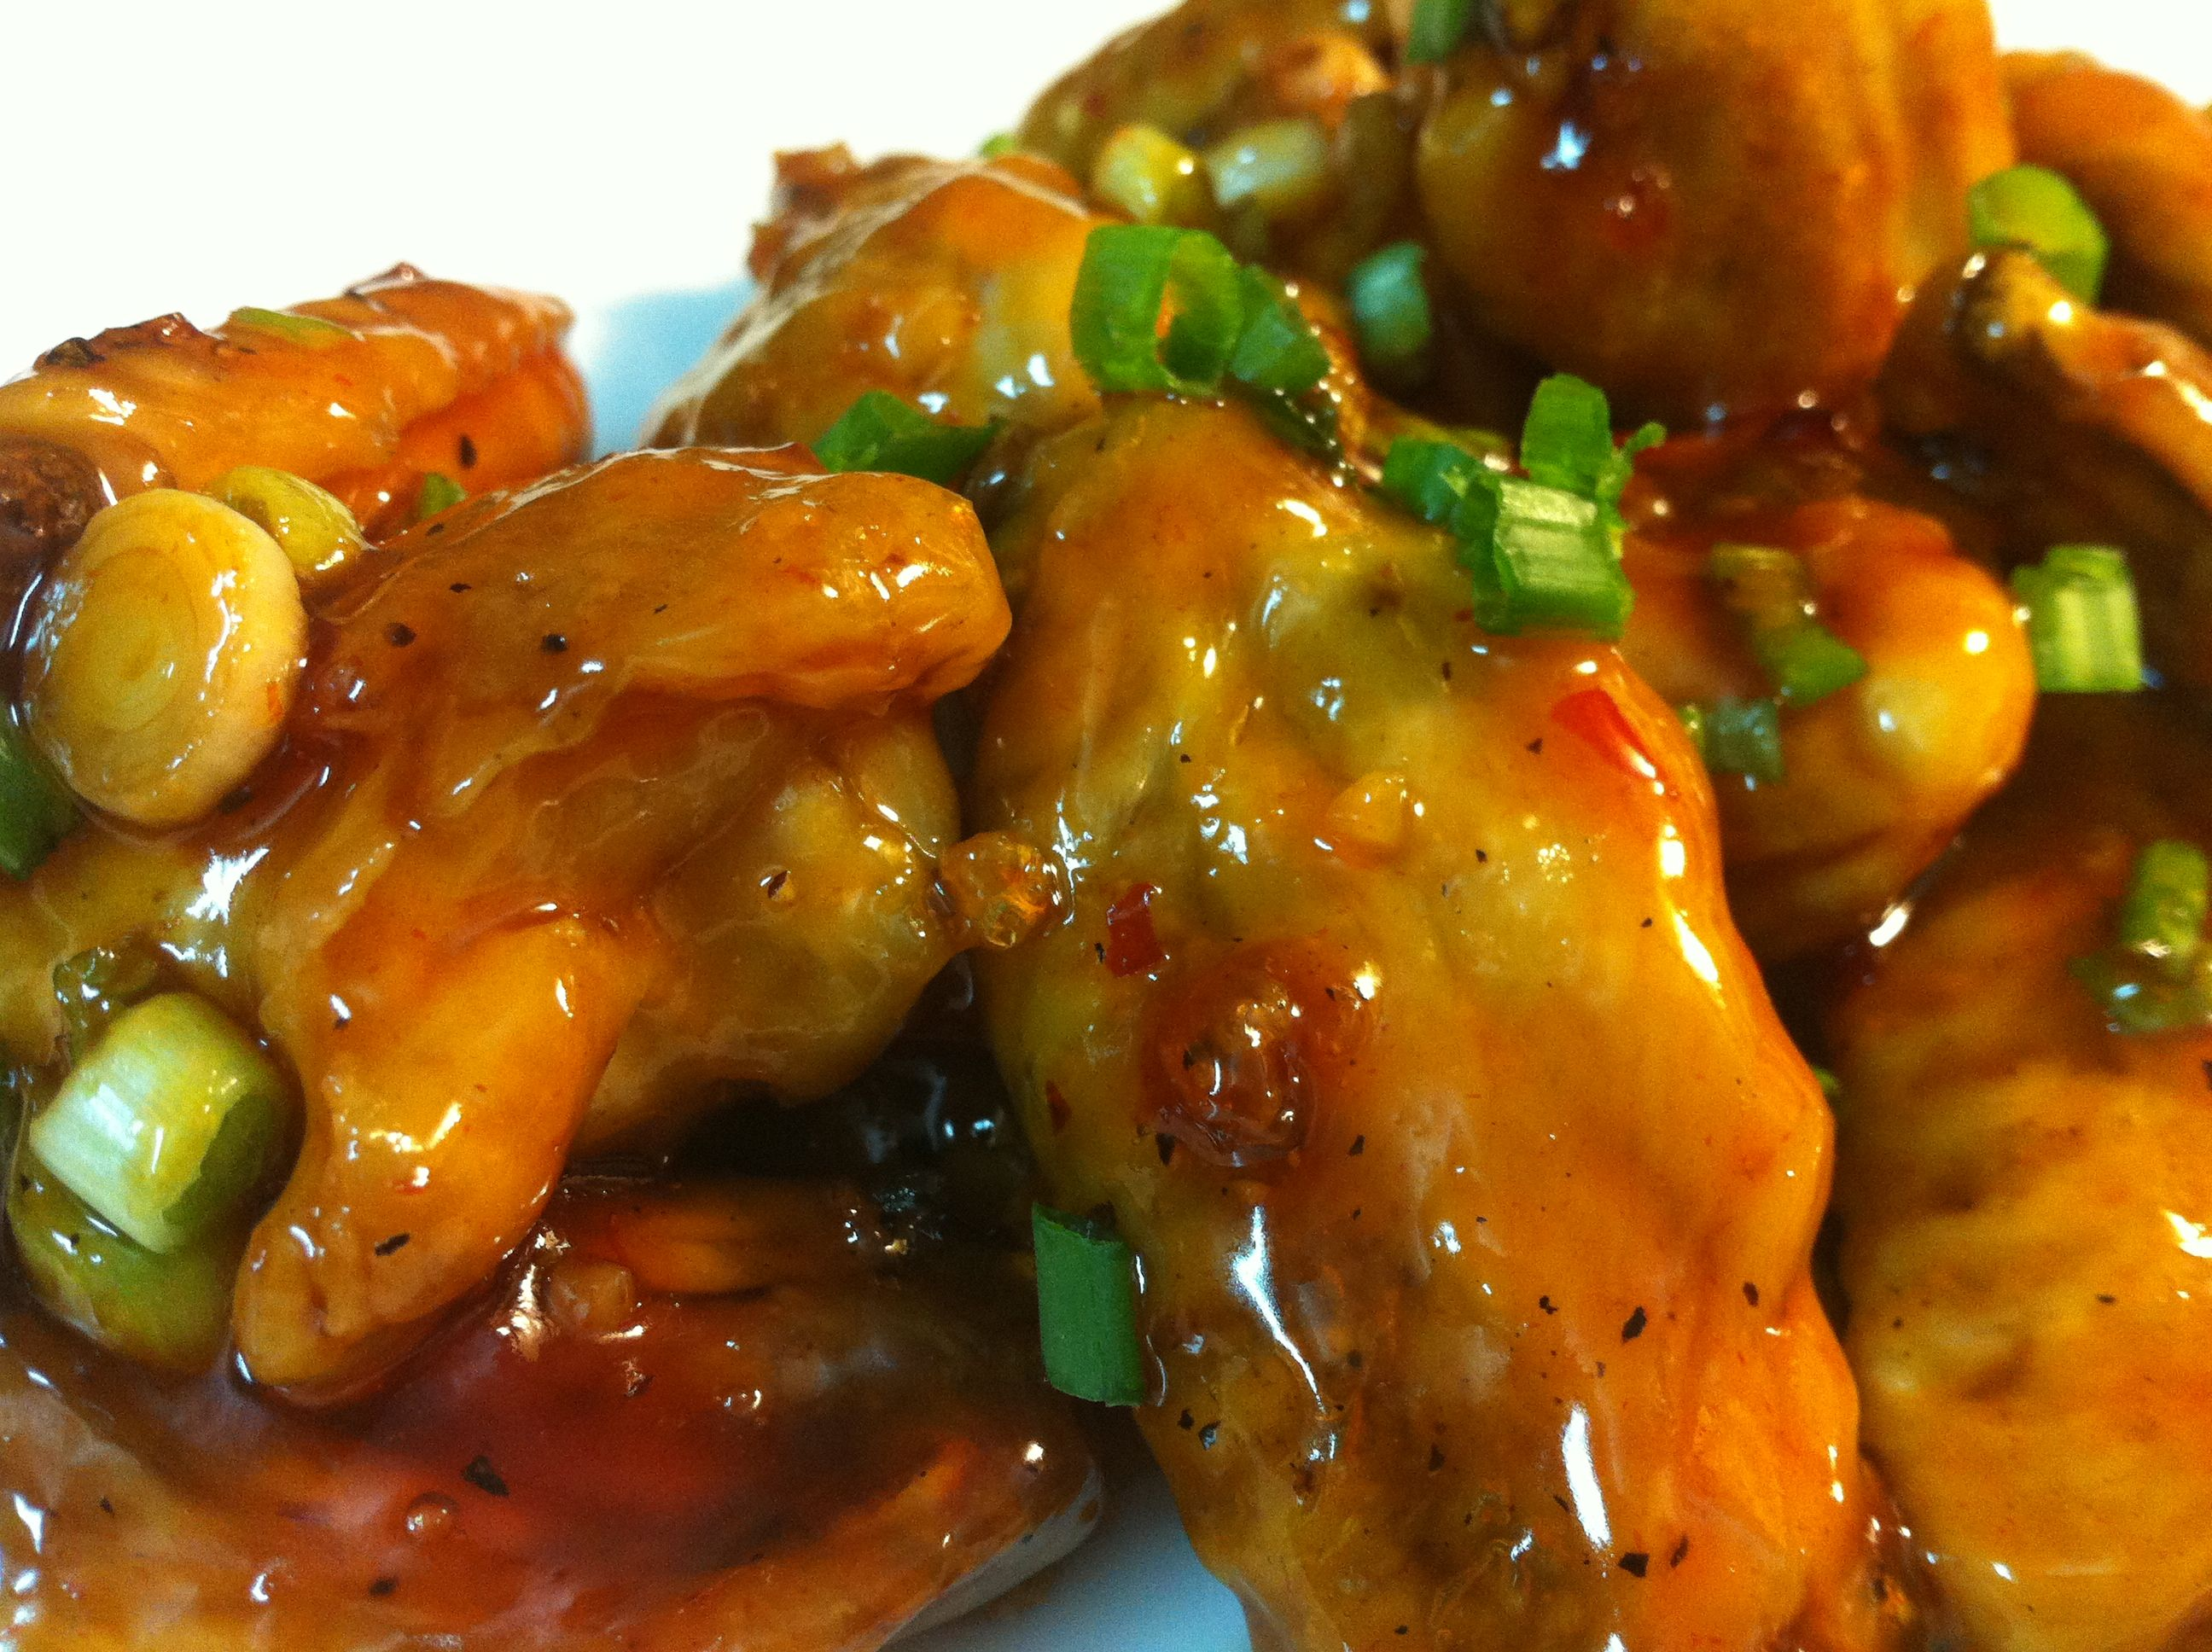 Spicy Maple glaze chicken wings